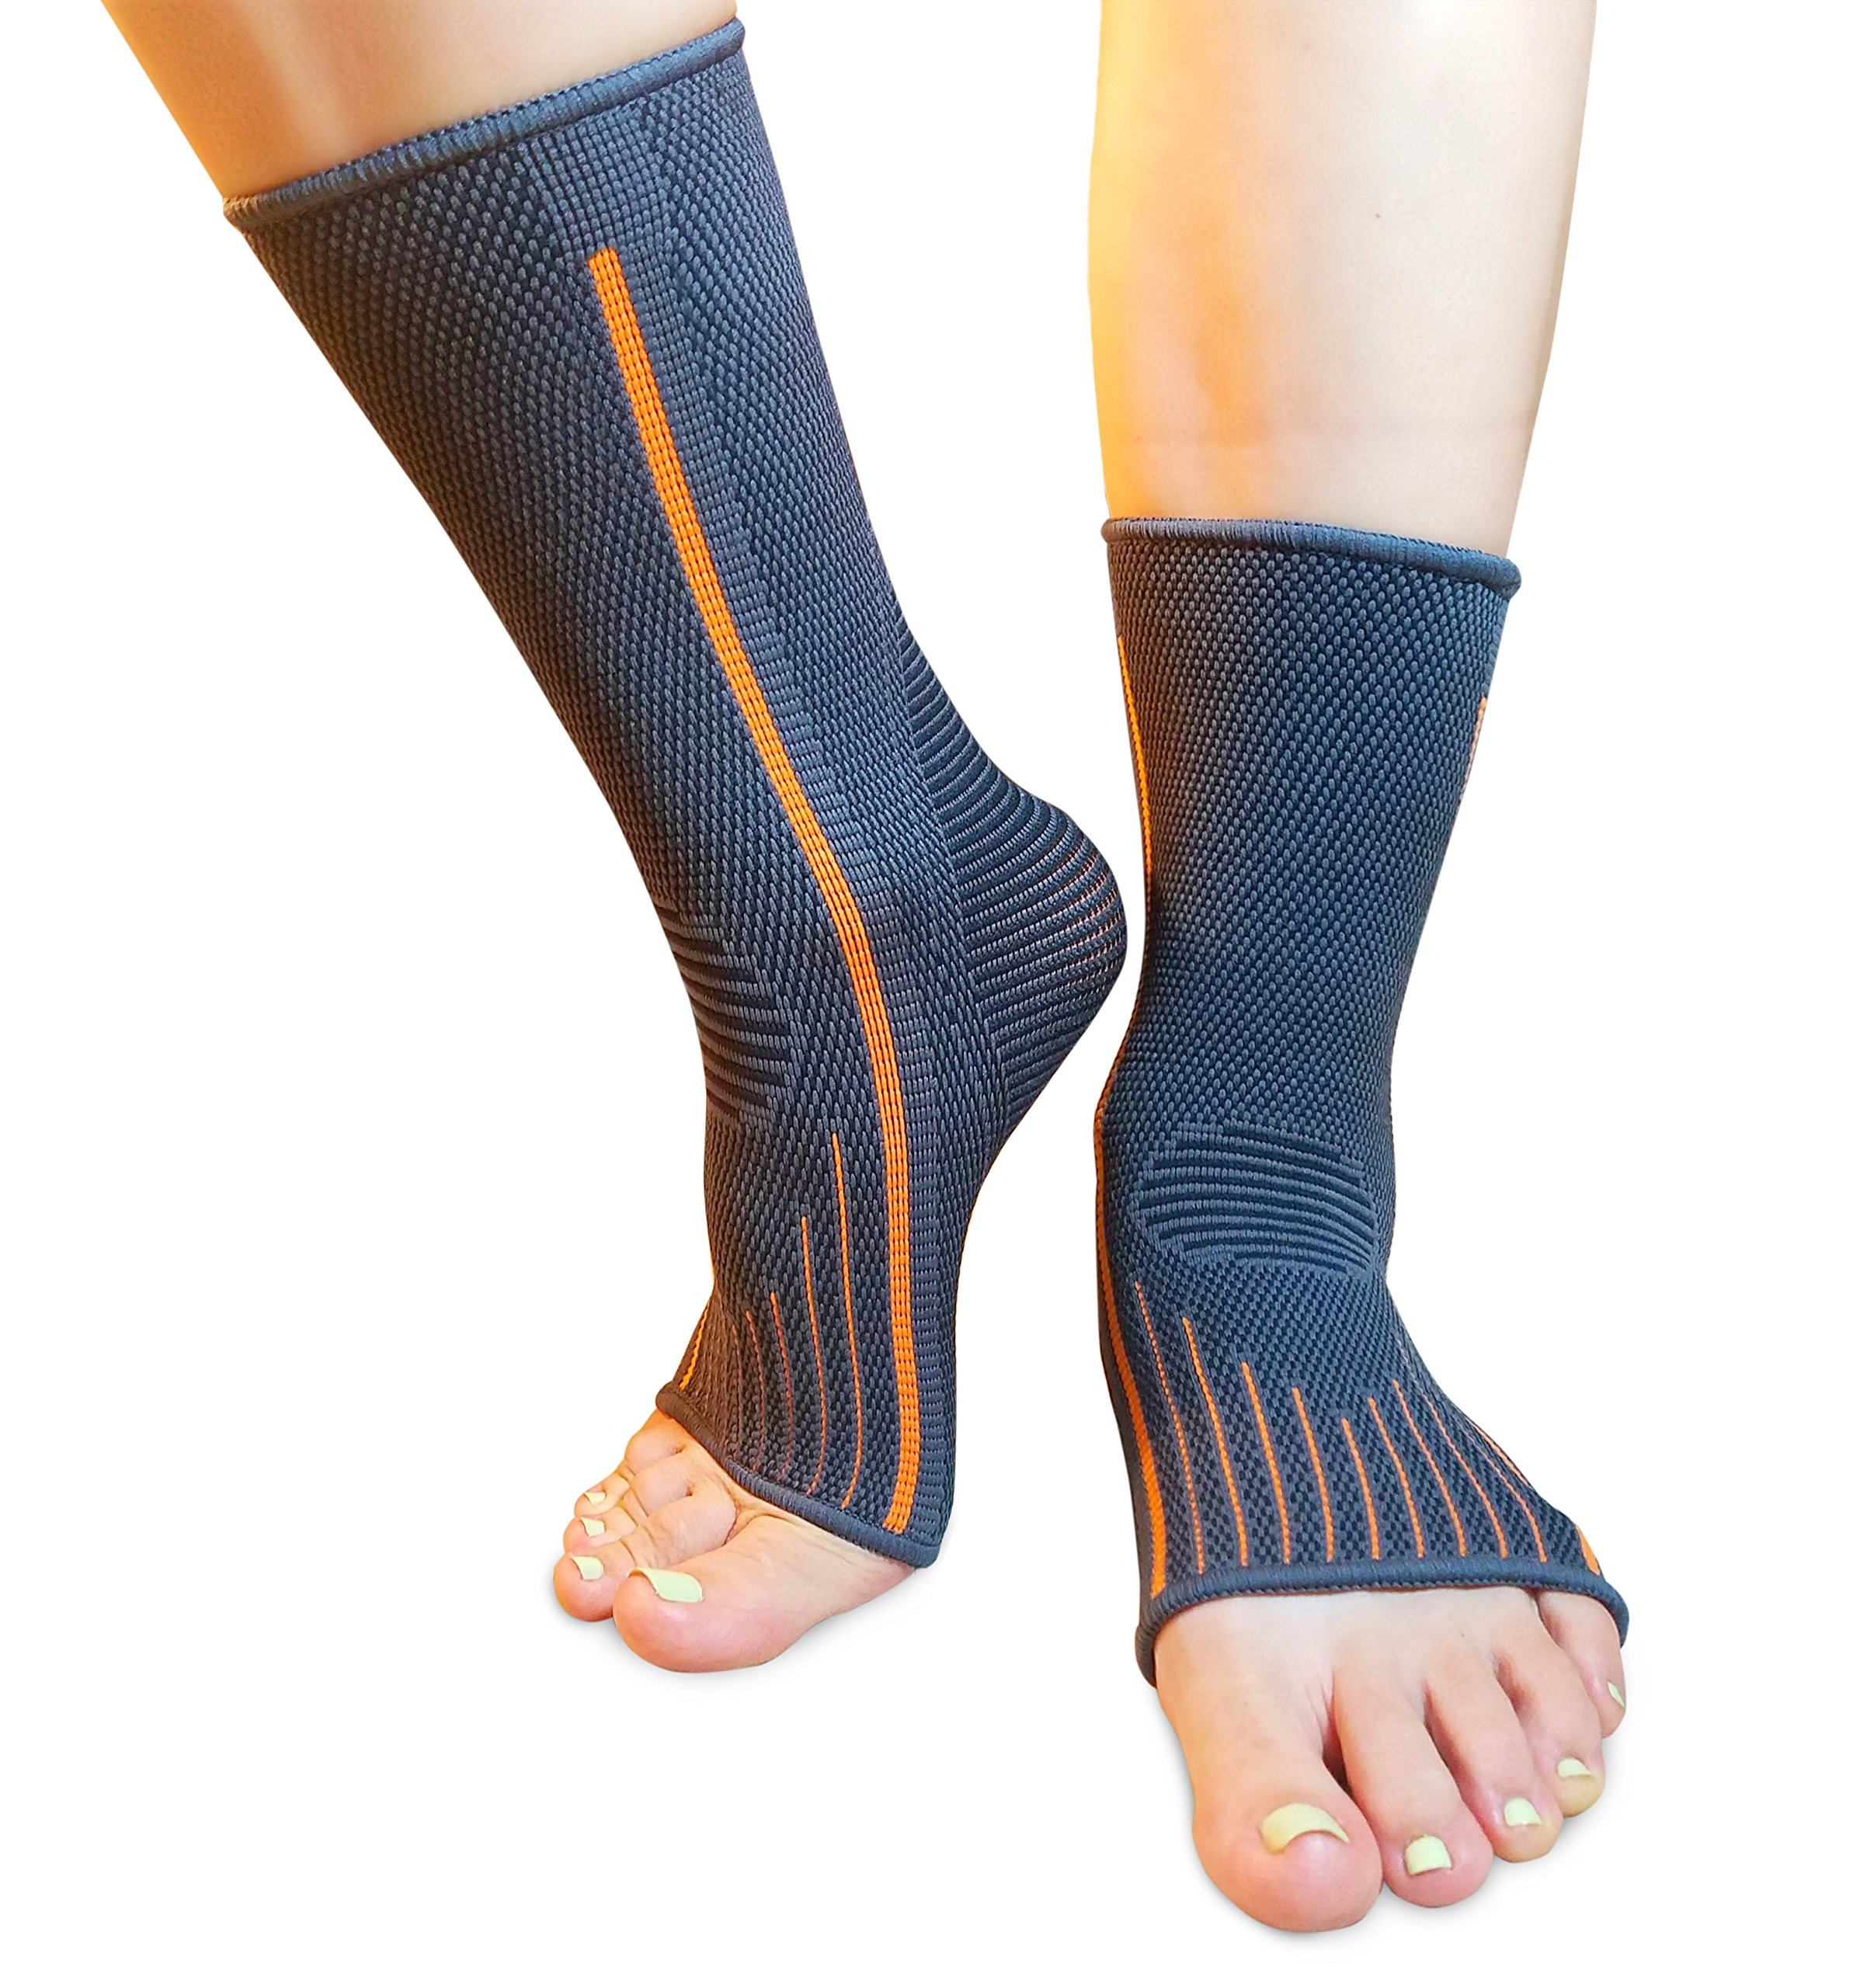 Ankle Brace Compression Sleeve   Arch Support   Foot Sock for Injury Recovery, Joint Pain, Swelling, Achilles Tendon   Pain Relief from Heel Spurs, Plantar Fasciitis   Breathable   Women & Men - M by BigEL (Image #3)